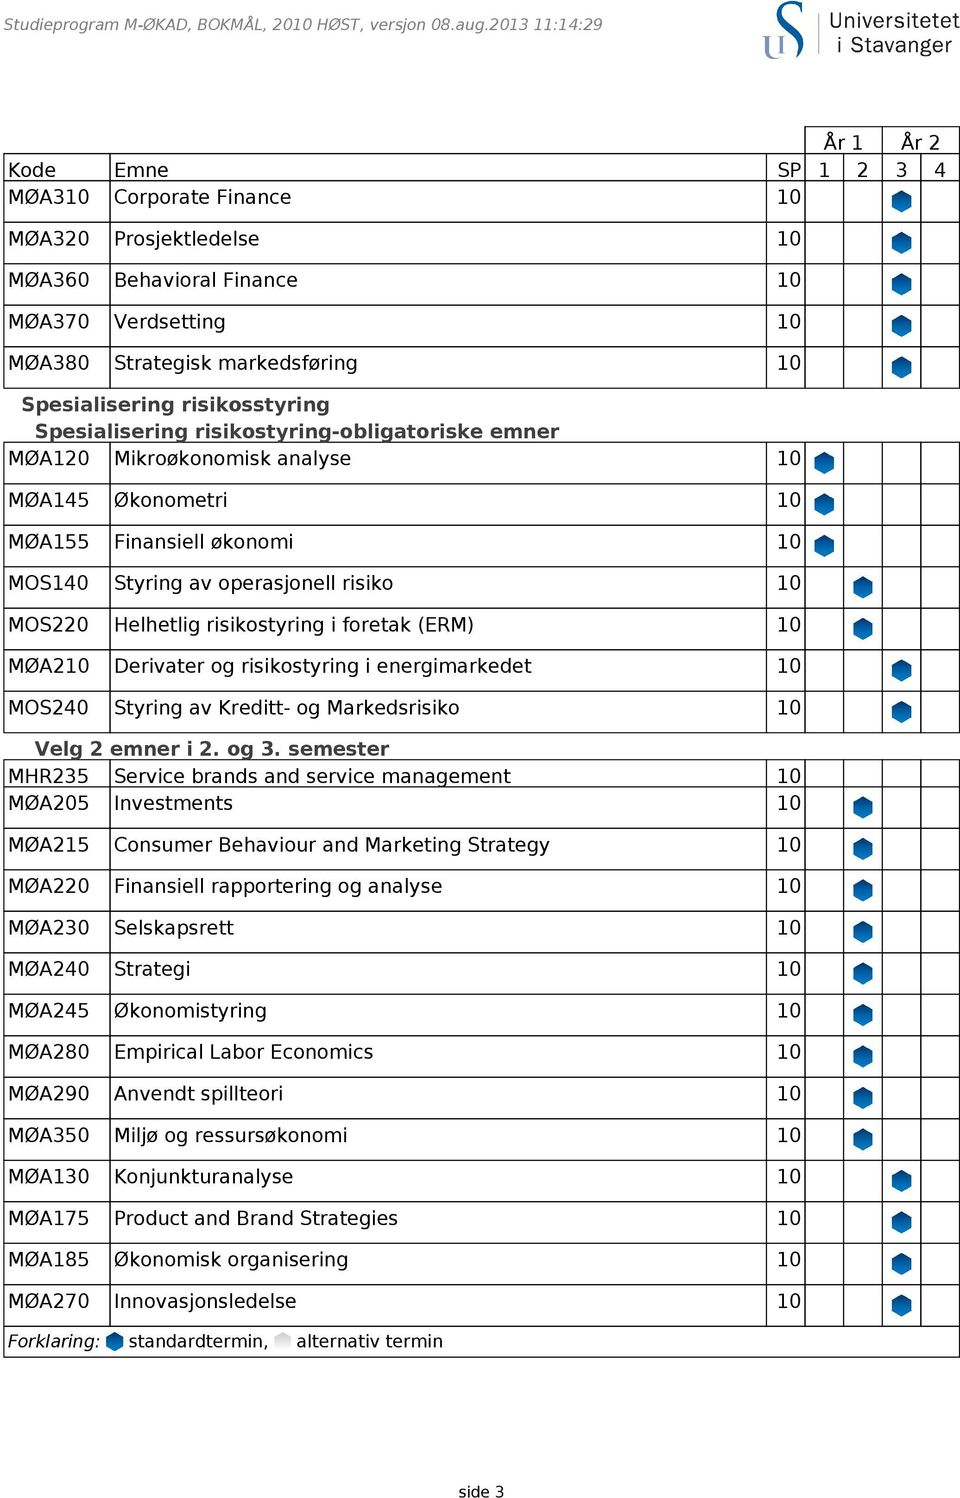 semester MHR235 Service brands and service management 10 MØA205 Investments 10 MØA220 Finansiell rapportering og analyse 10 MØA230